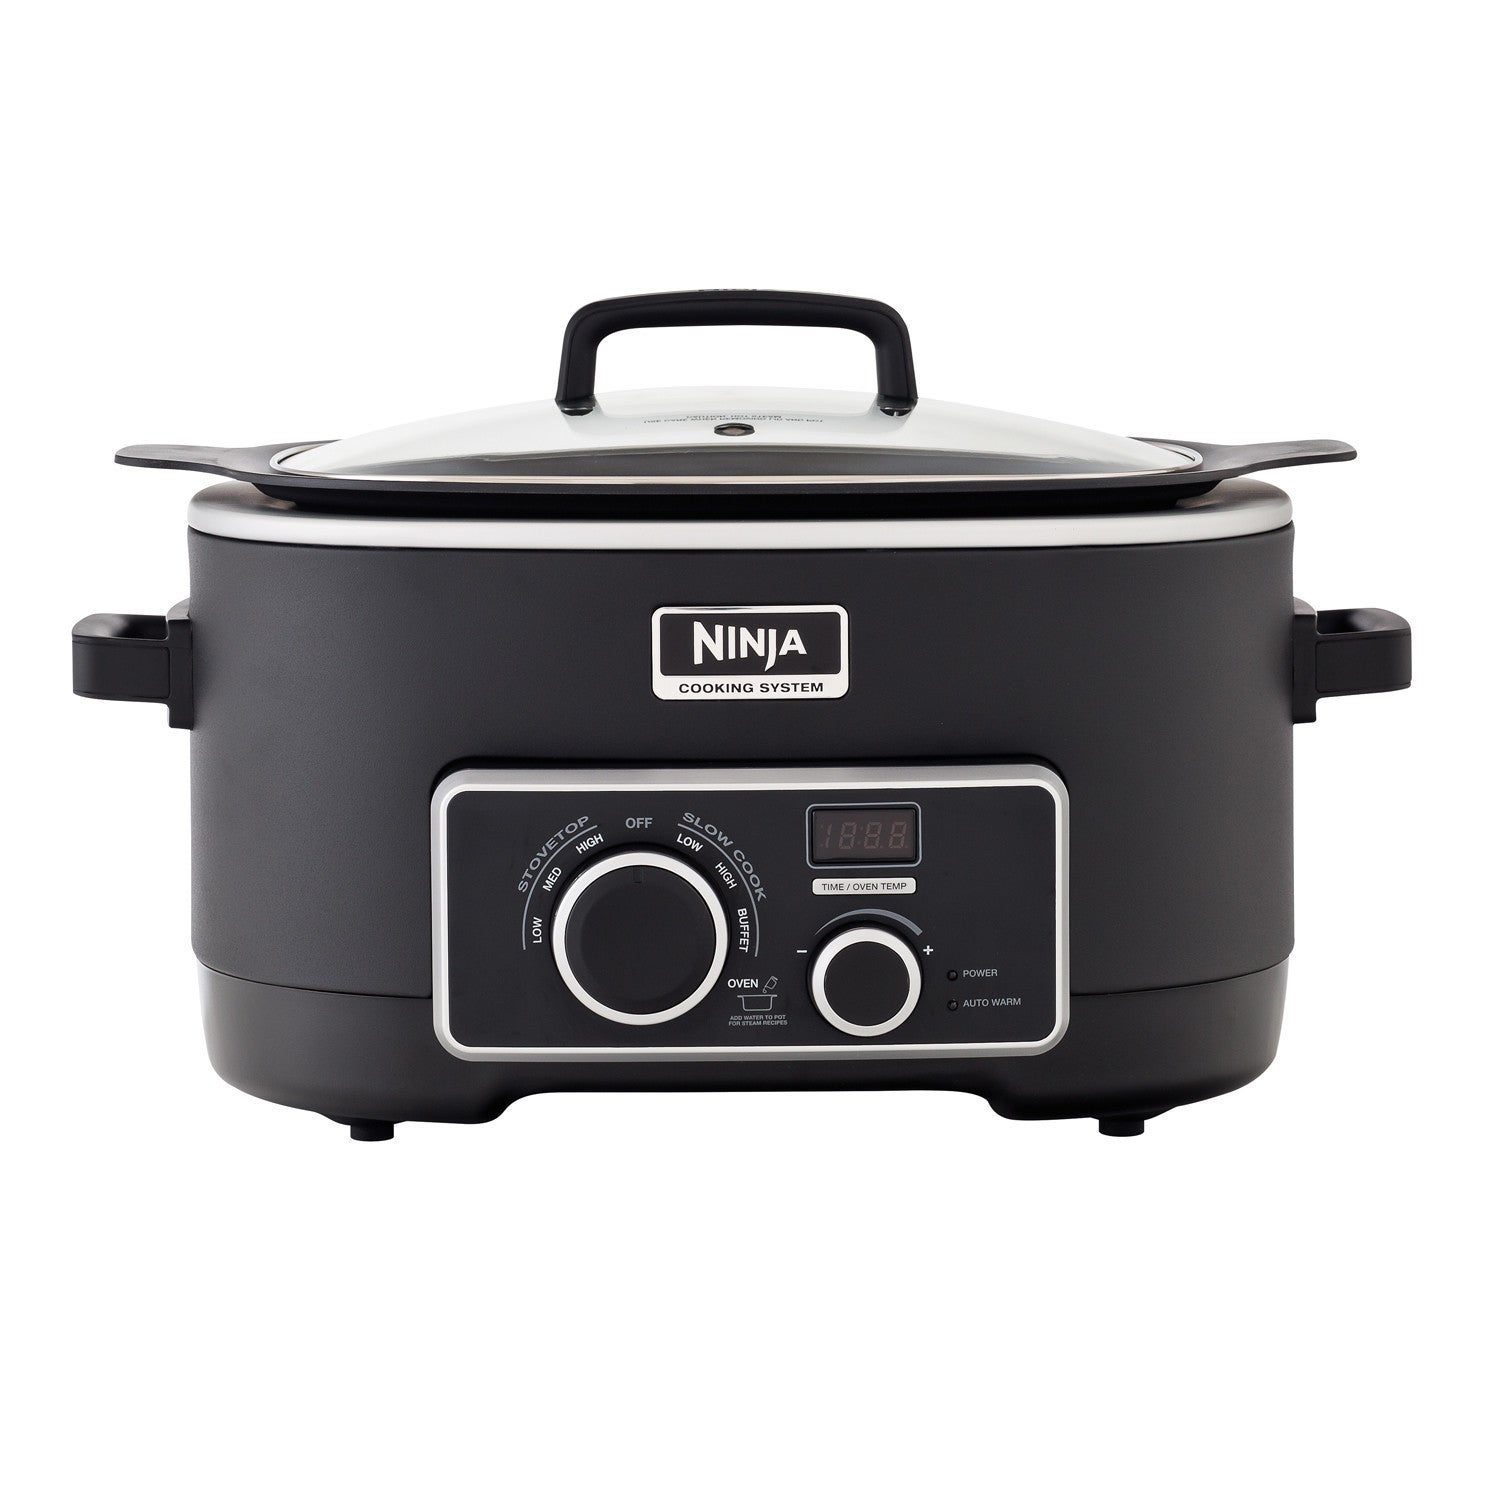 Ninja Corp MC751 3-in-1 Cooking System (Aluminum)